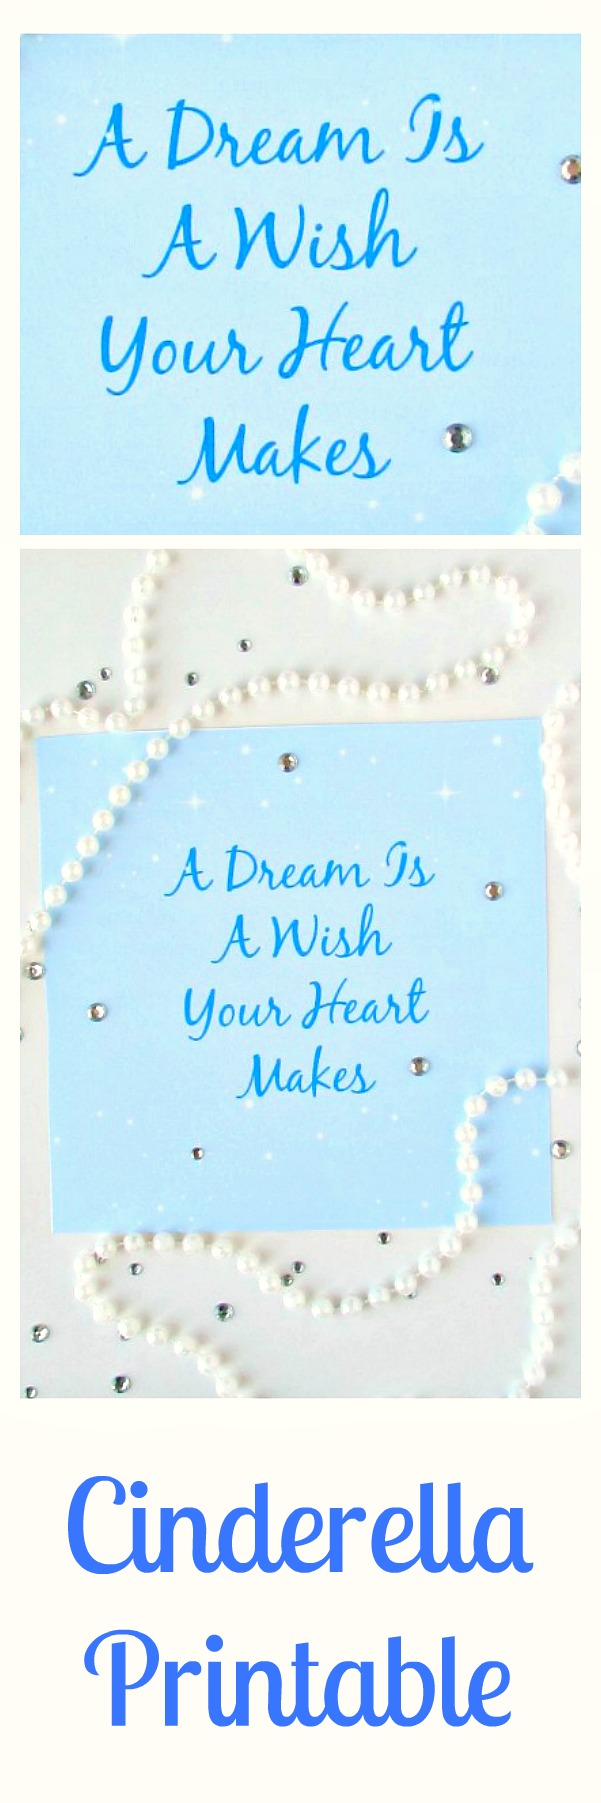 Cinderella Printable- A dream is a wish your heart makes